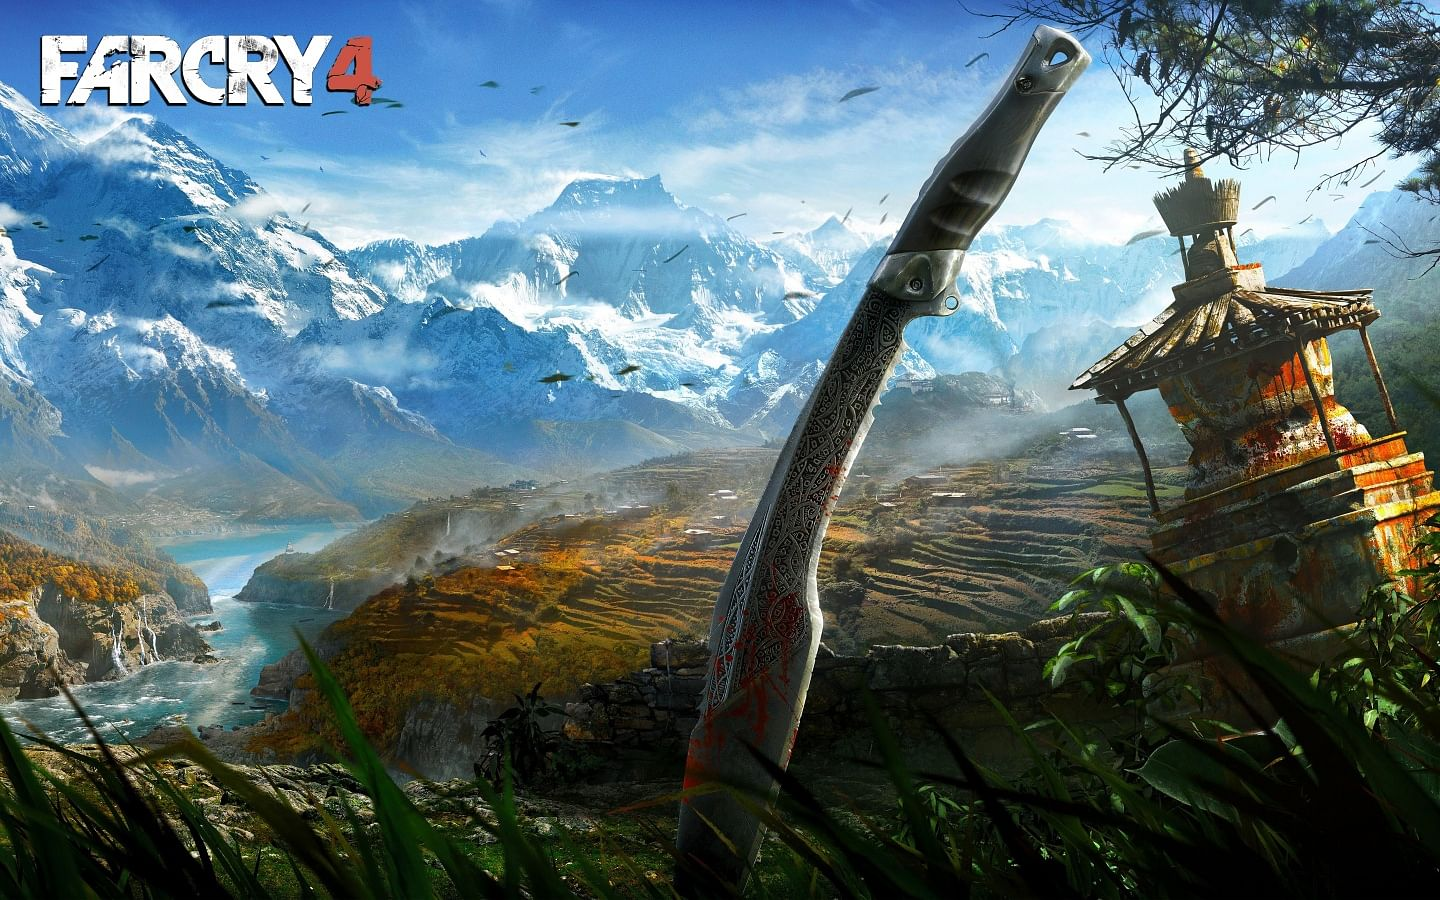 Far Cry 4: Complete Edition for PlayStation 4 - GameFAQs